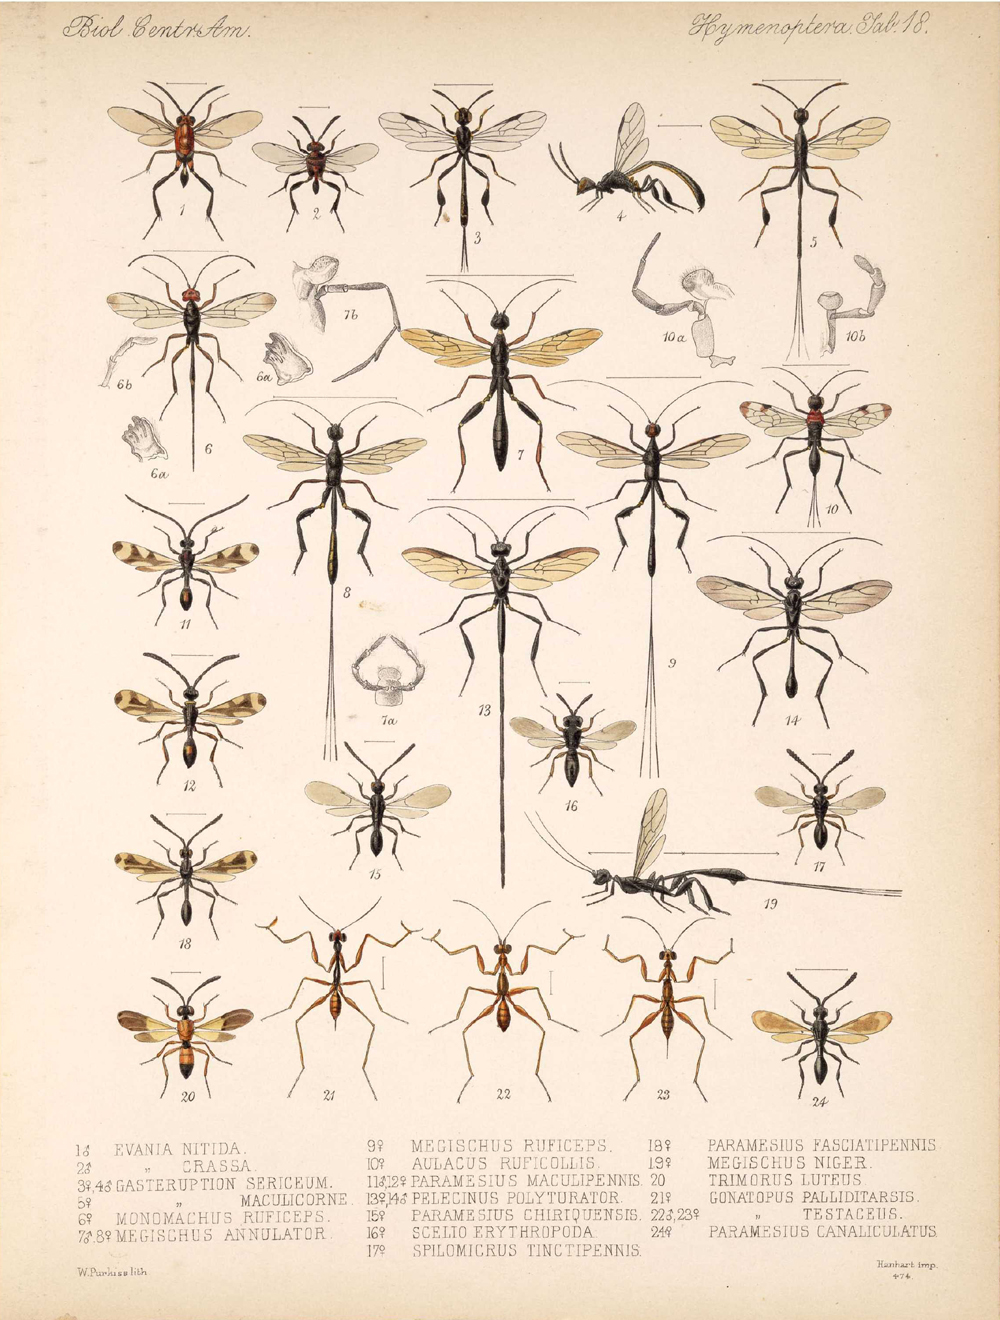 Other Insects,  Image number:bca_13_01_00_526